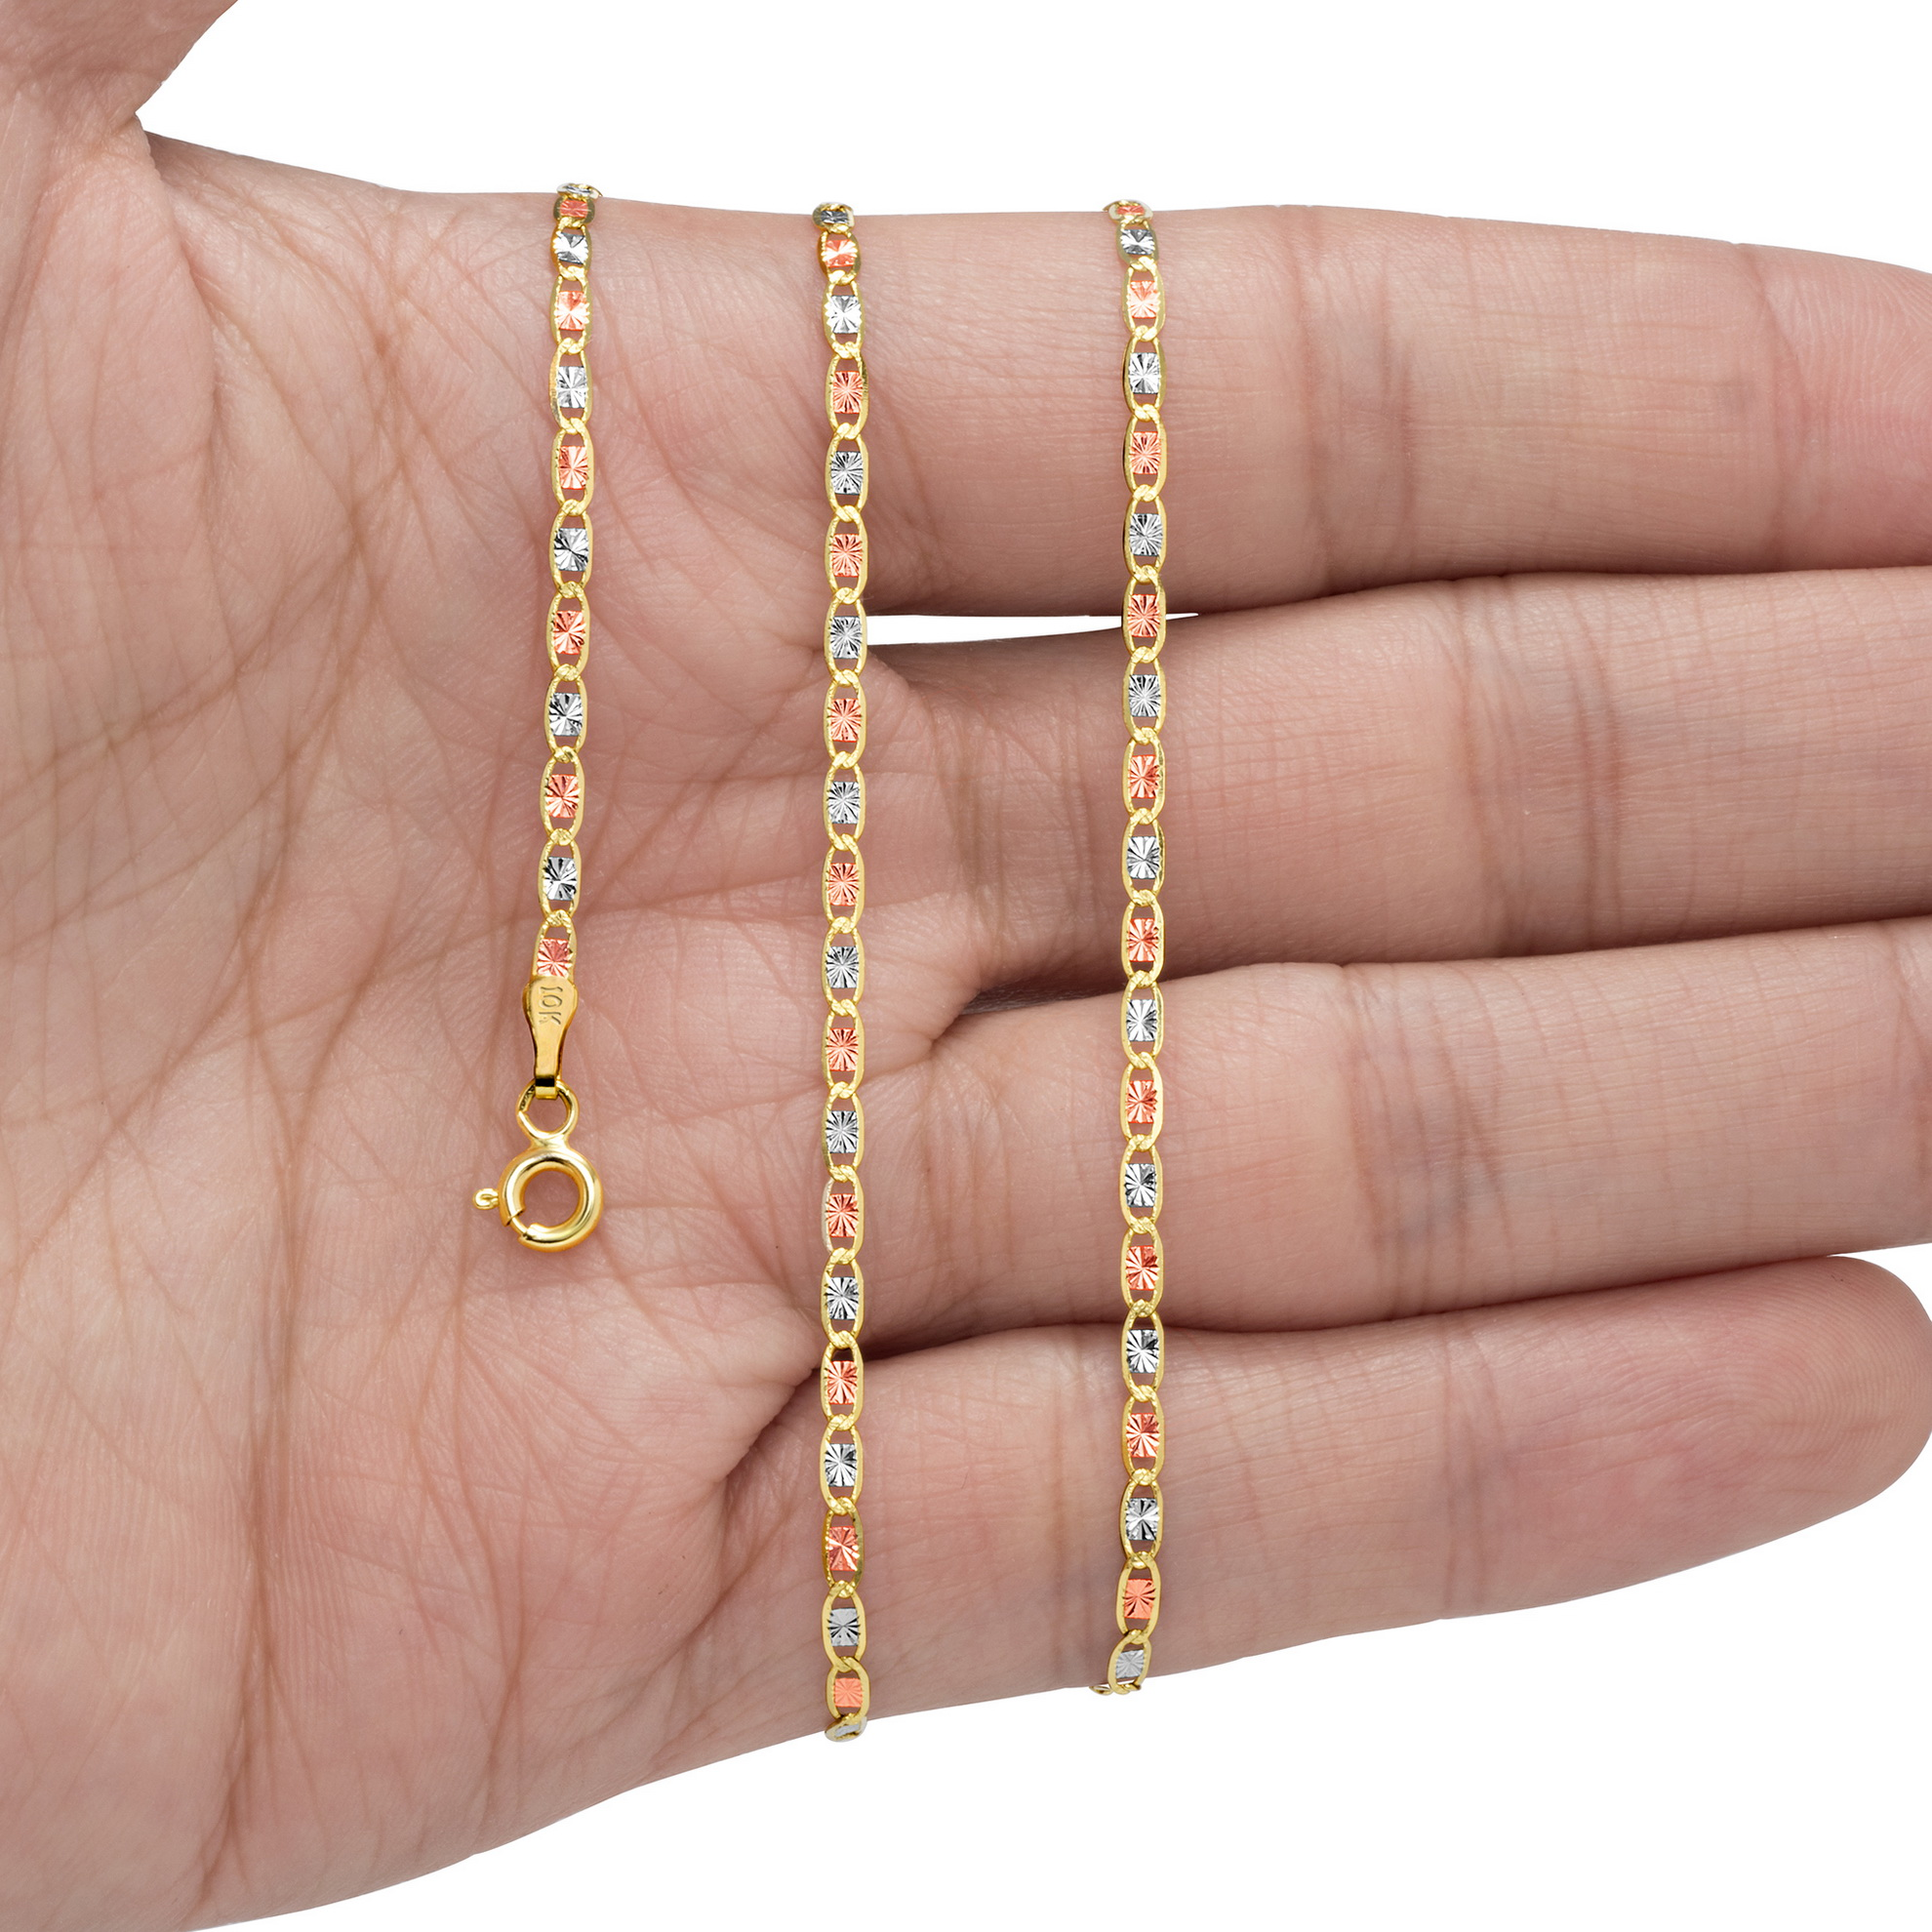 10K-Yellow-Rose-White-Gold-1-5mm-6mm-Valentino-Chain-Necklace-Bracelet-7-034-30-034 thumbnail 16